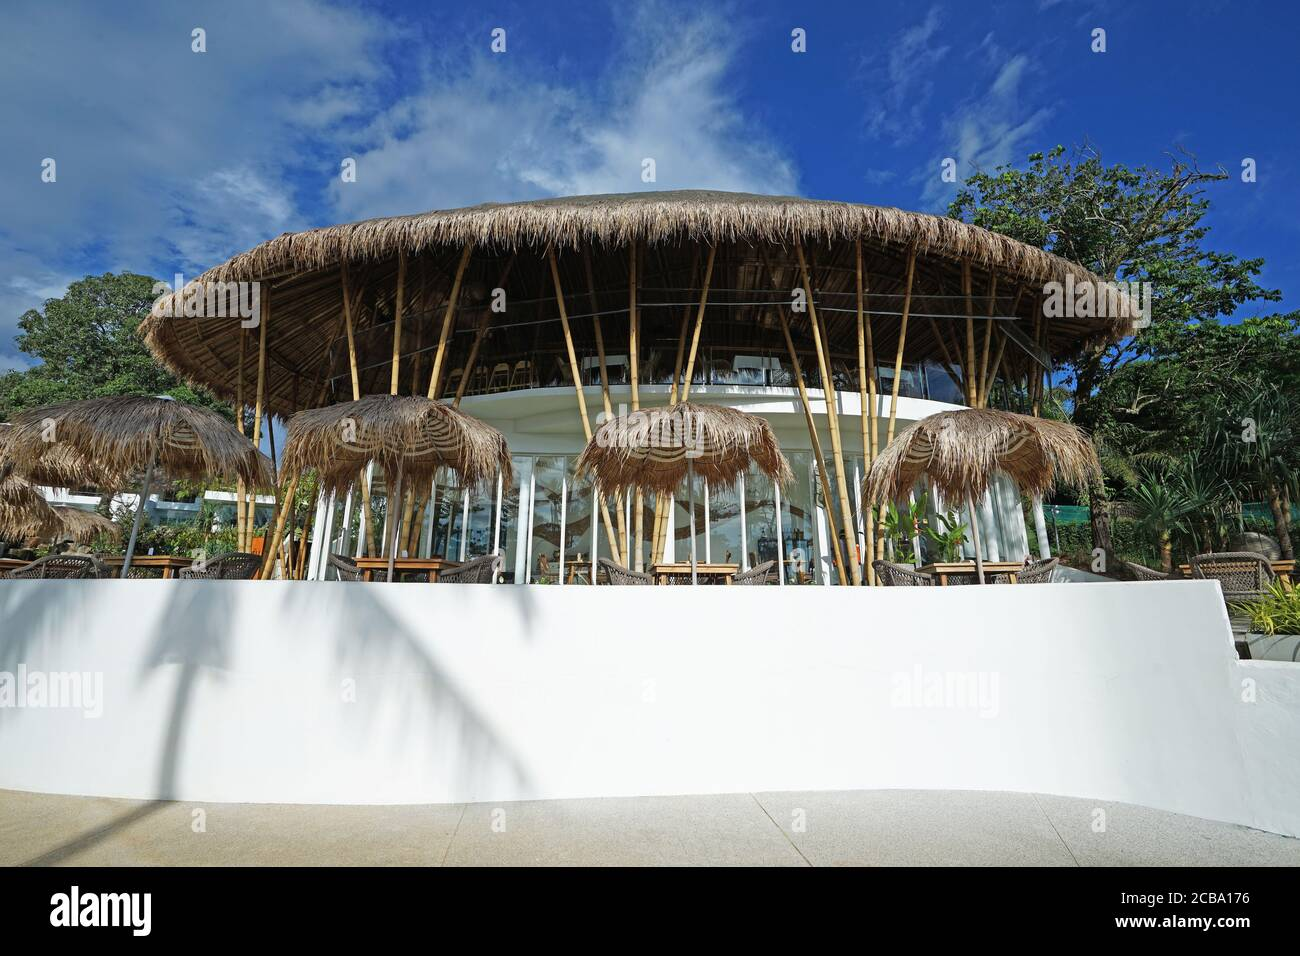 Exterior Architecture And Design Of Tropical Dining Restaurant At Natural Ecology Stylish And Spacious Hotel Villa Thailand Stock Photo Alamy